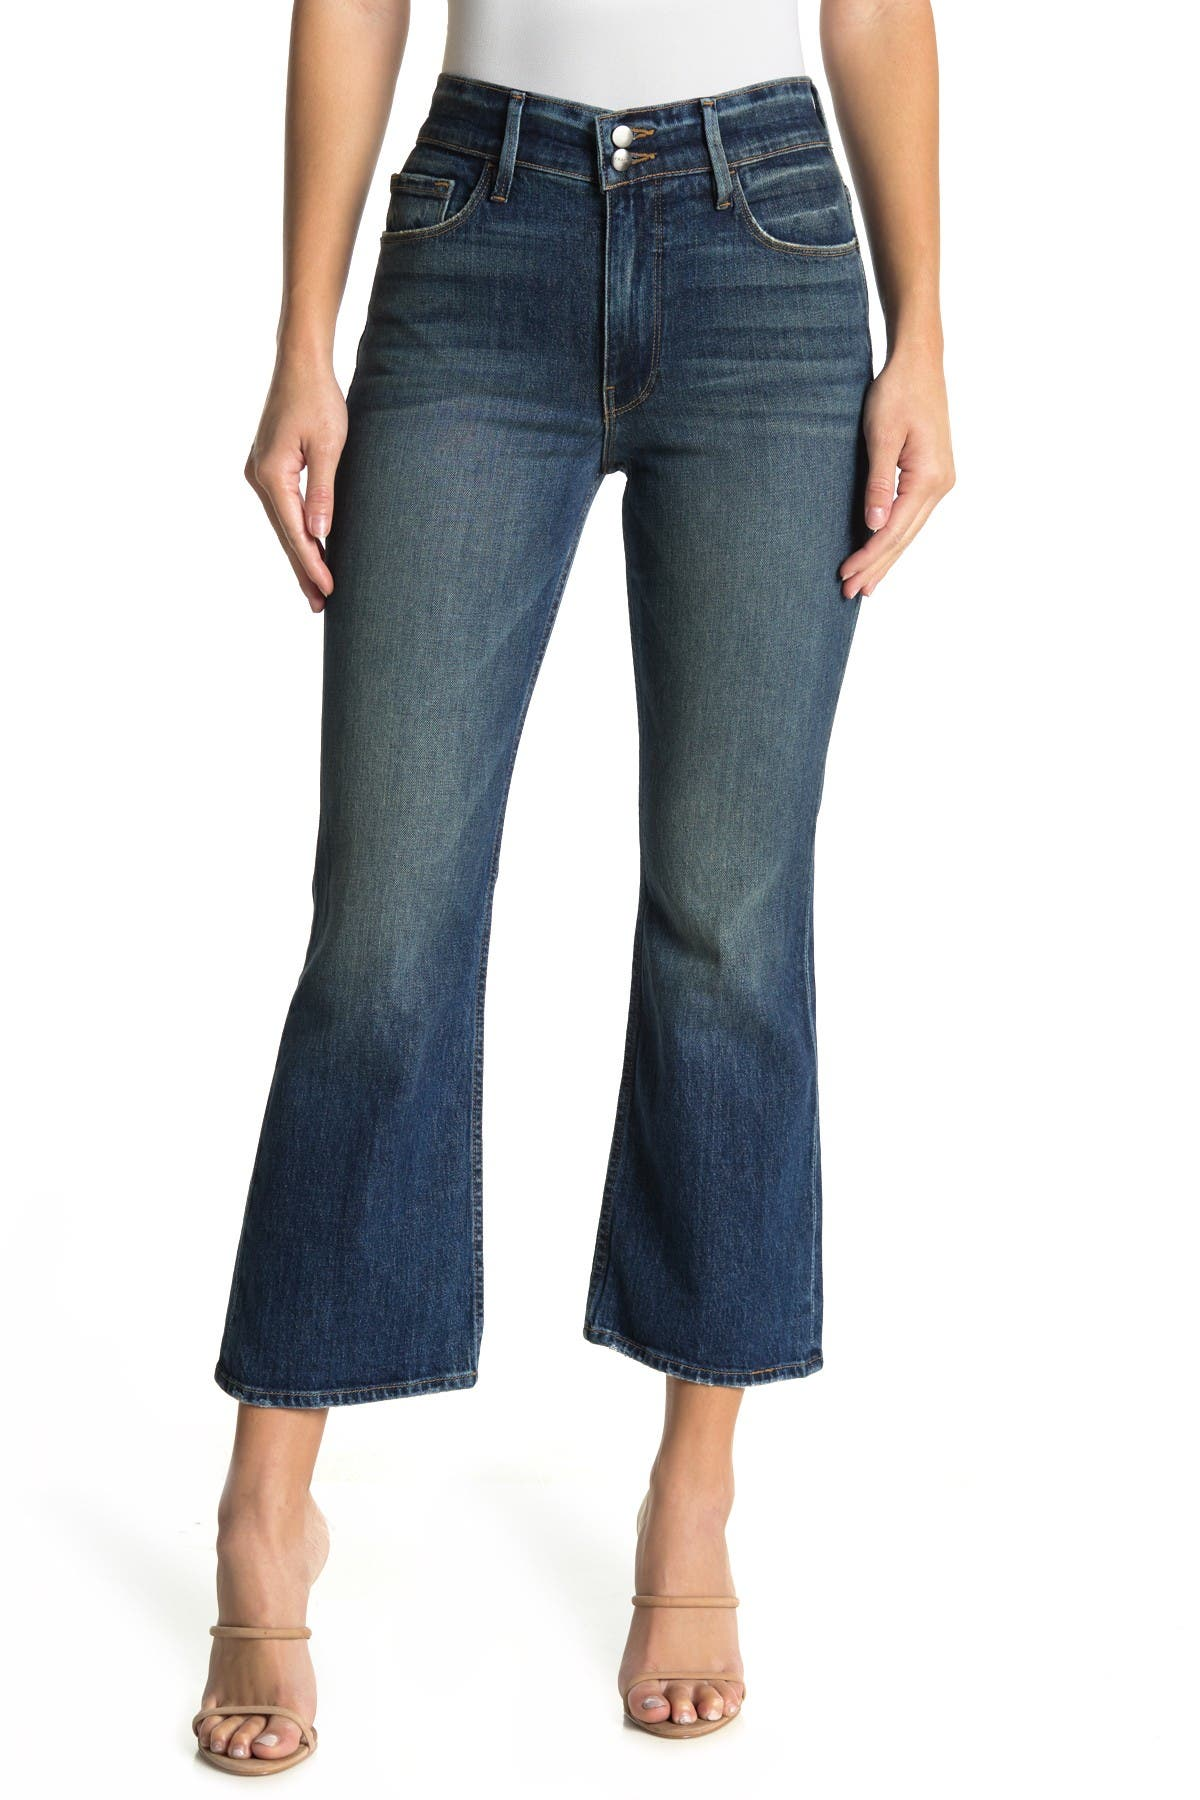 Image of FRAME Heritage Sylvie Flare Leg Jeans